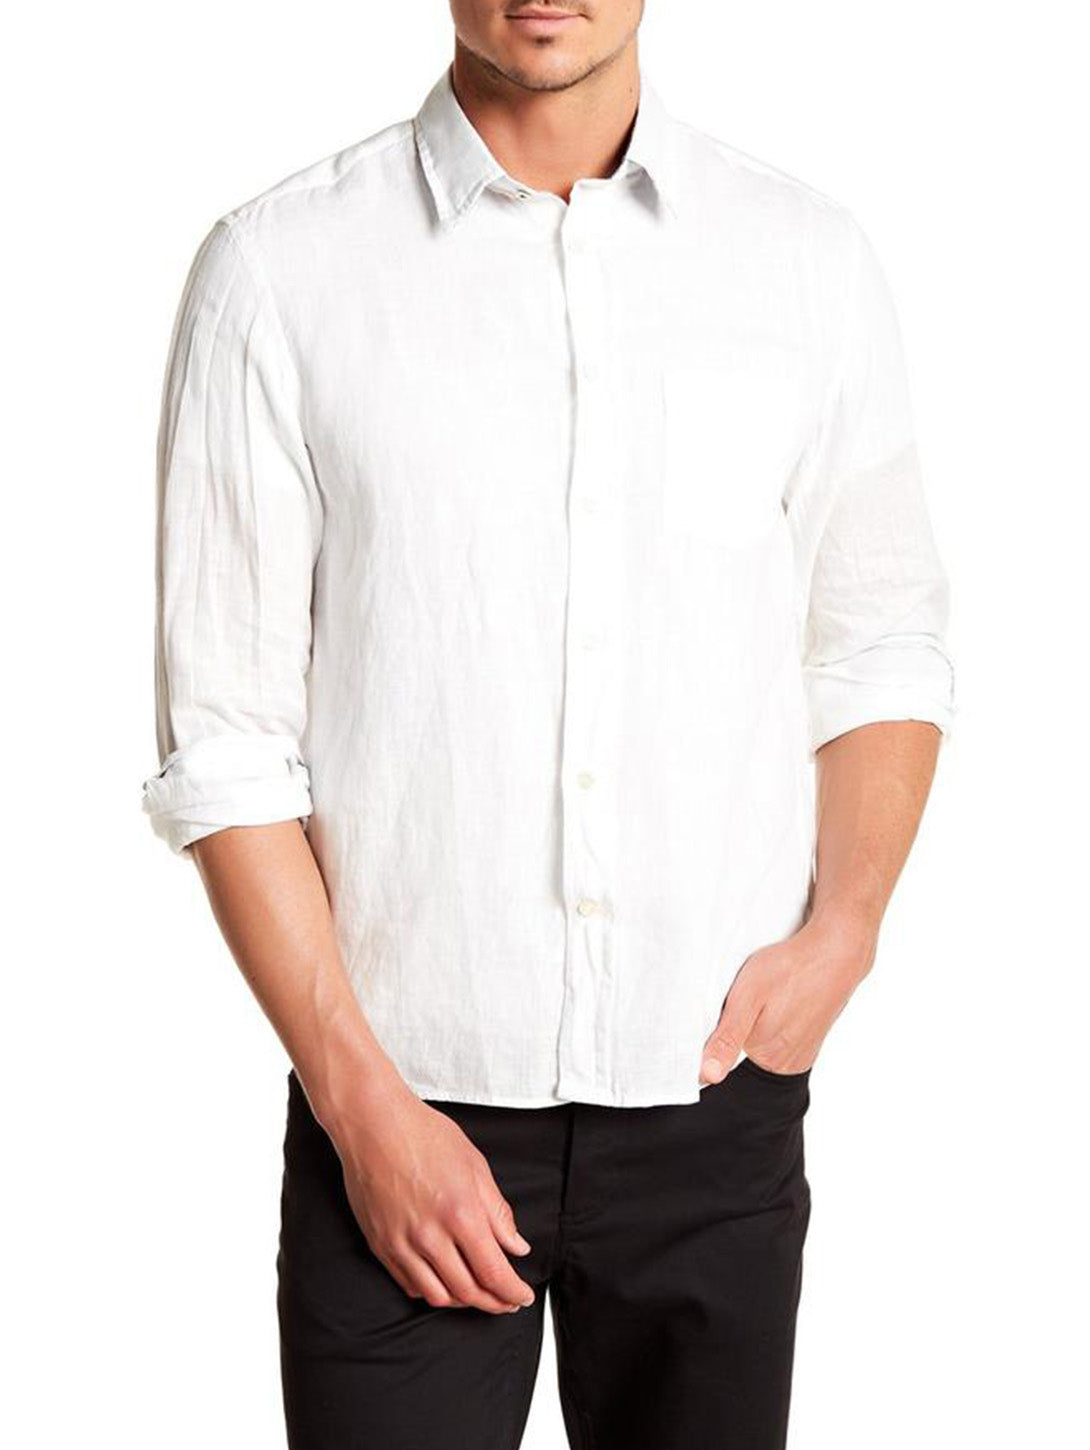 Linen Long Sleeve Button Down Shirt - White-Benson-Over the Rainbow